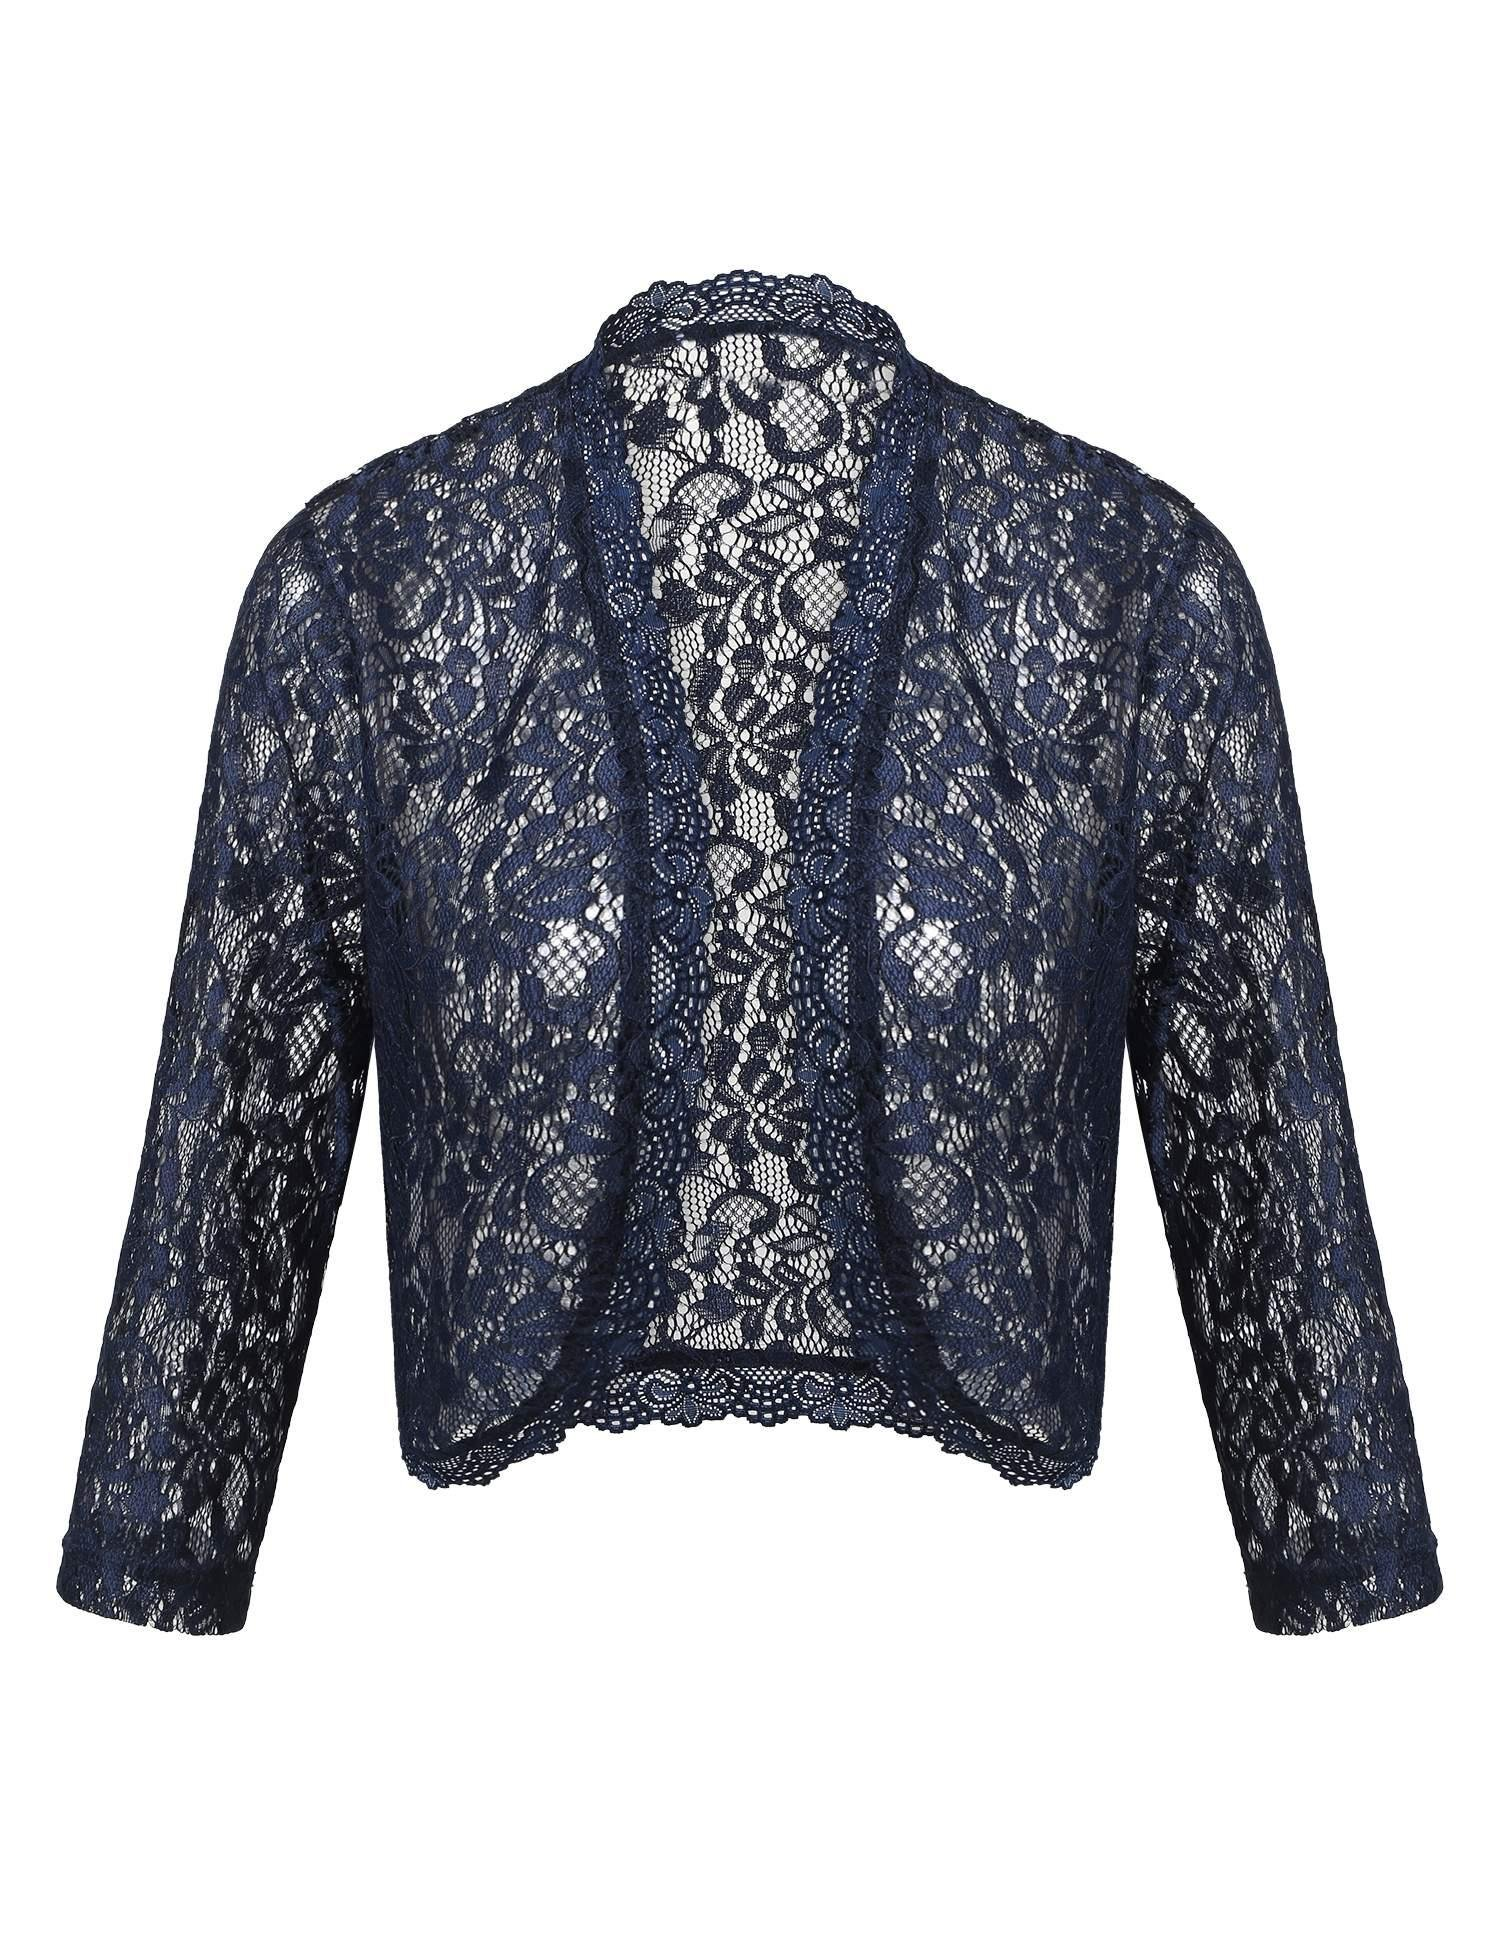 ThinIce Evening Shrug for Women Lace Cropped Dressy Cardigans Sweater for Wedding (Navy Blue, L)